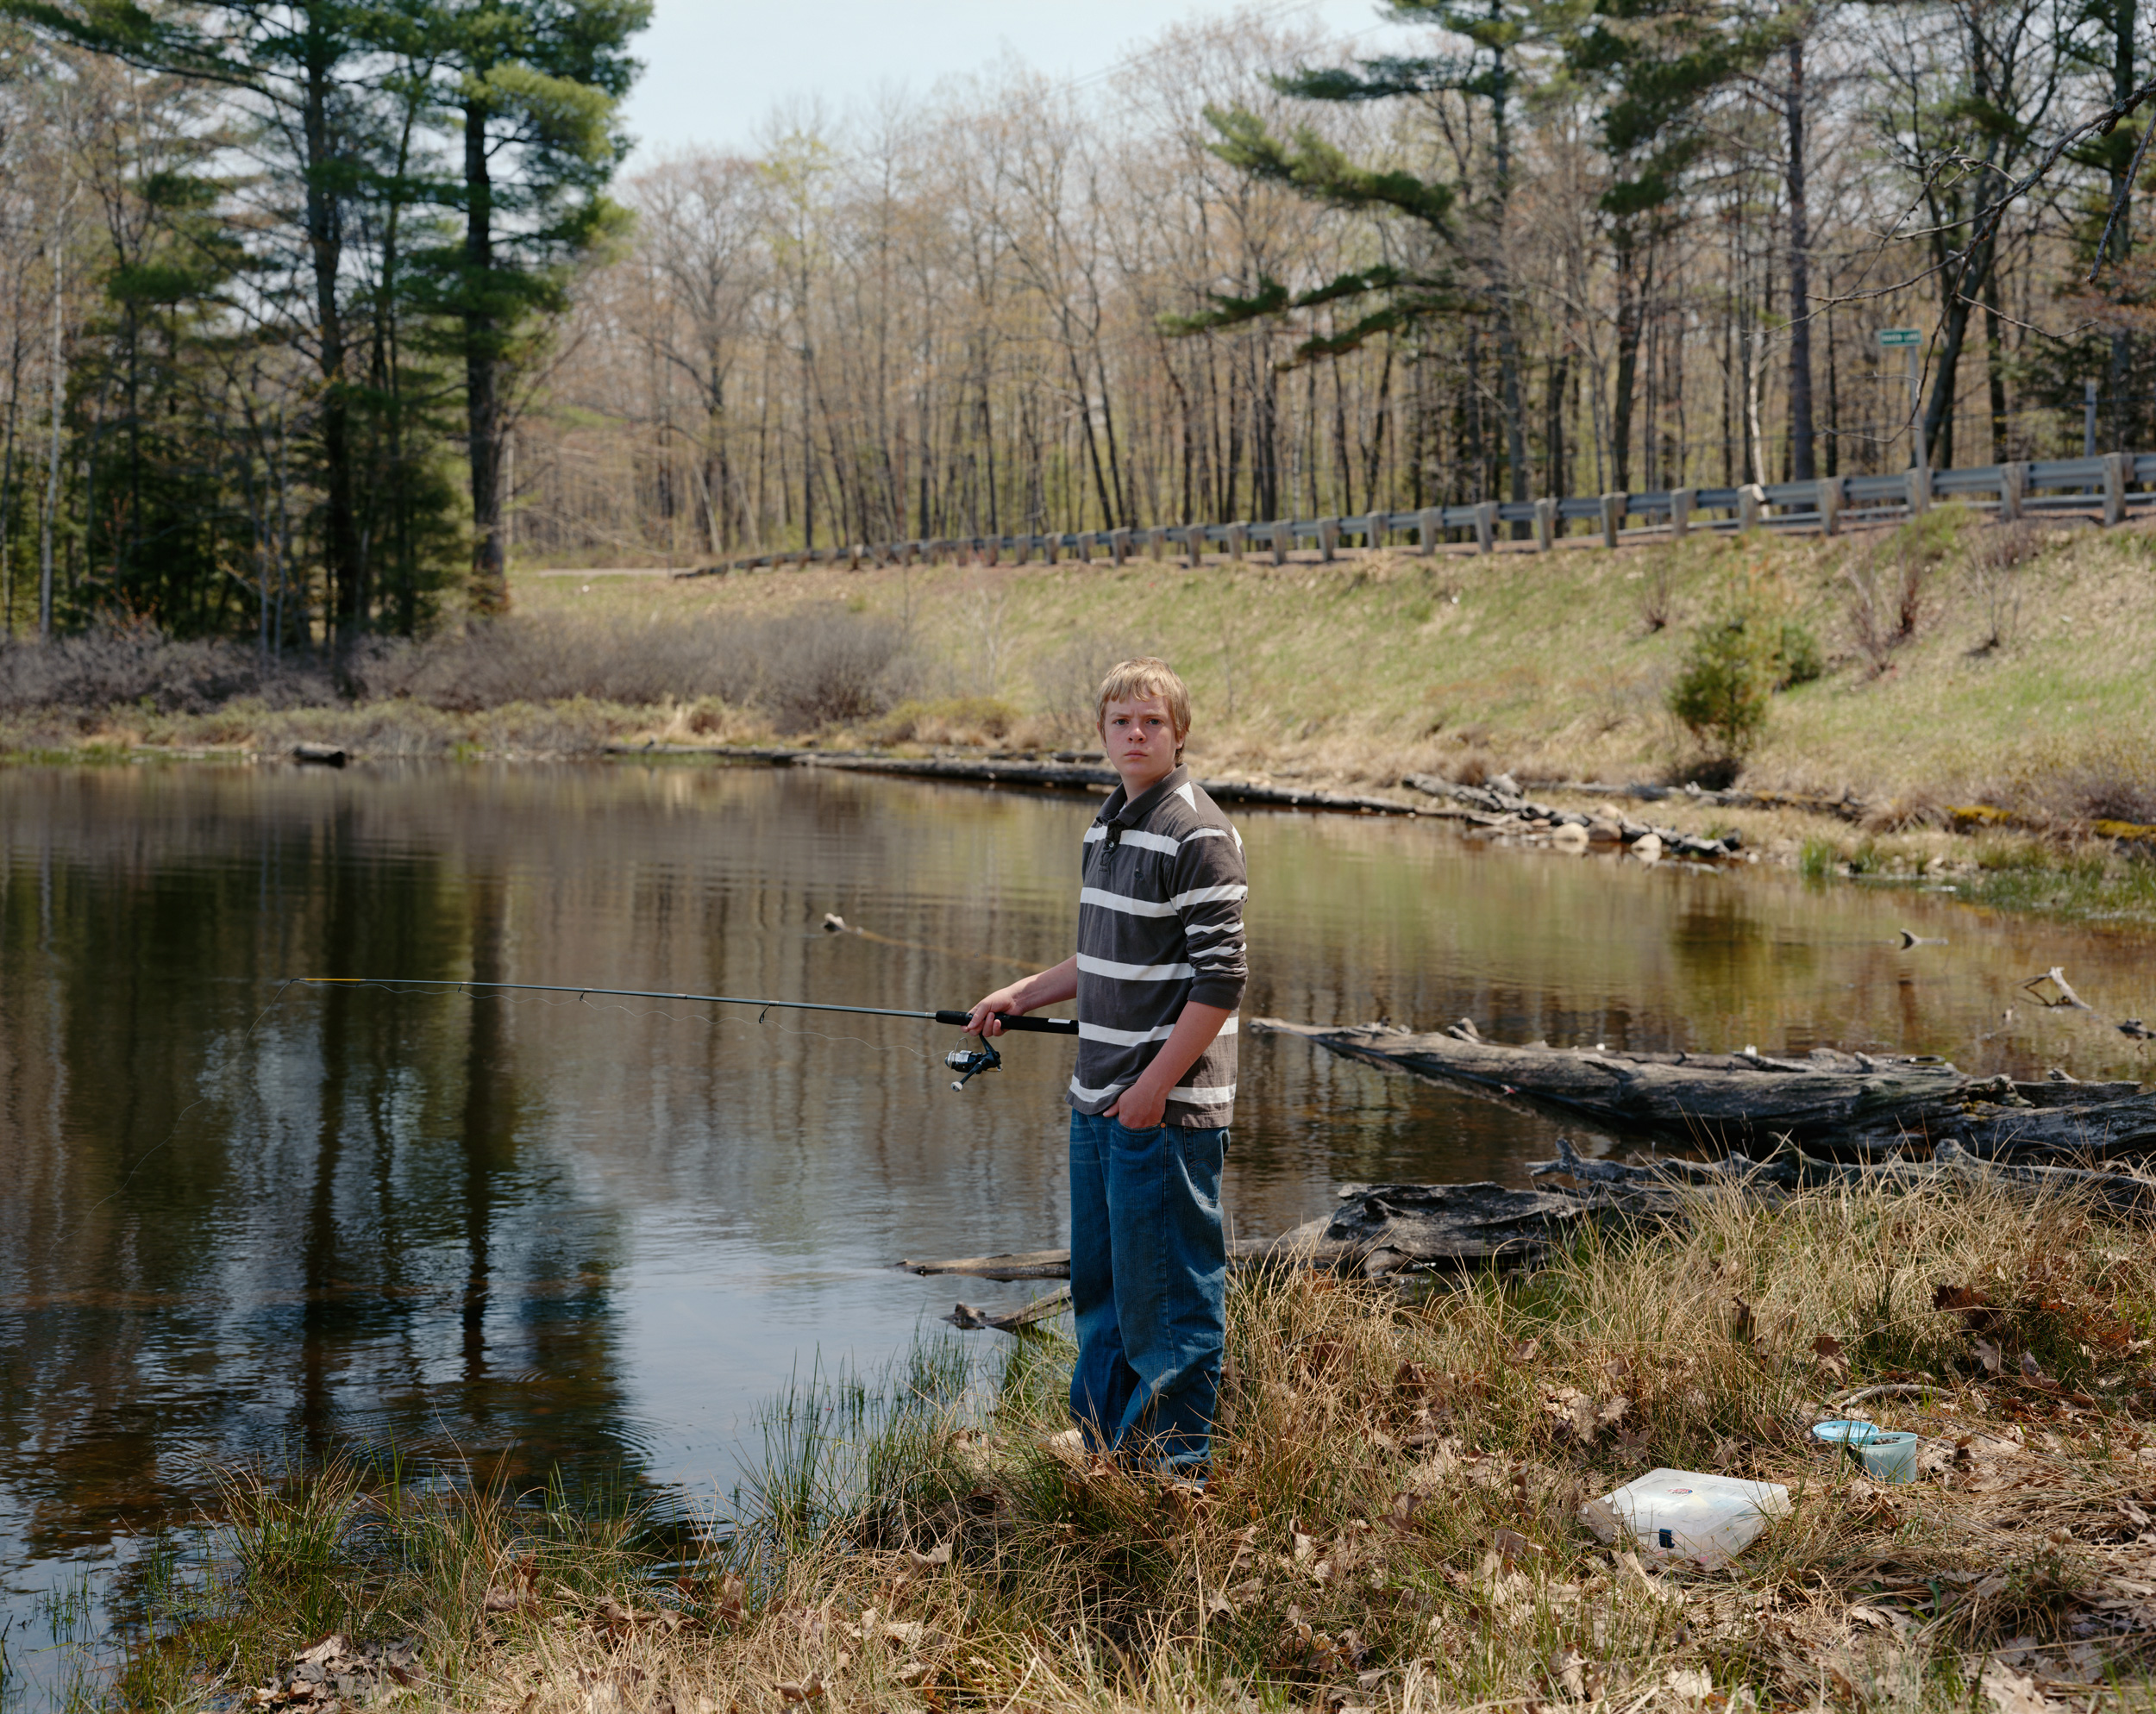 kid_fishing_lacdu_portfolio_final.jpg